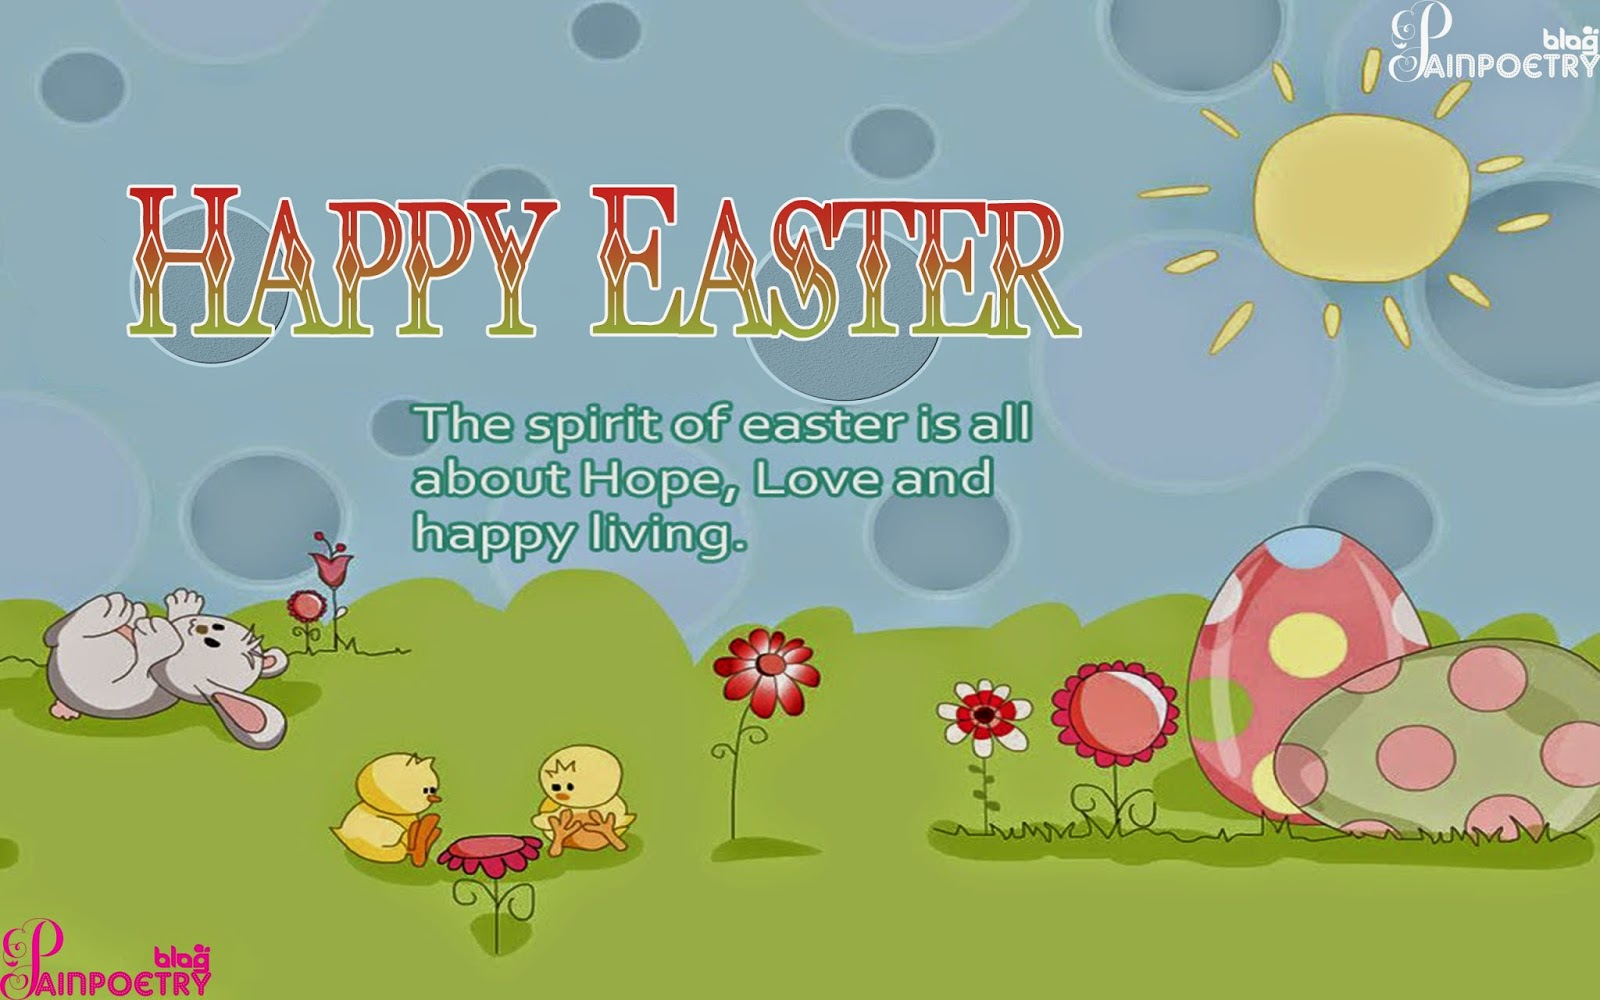 Happy-Easter-Bunny-with-Greeting-HD